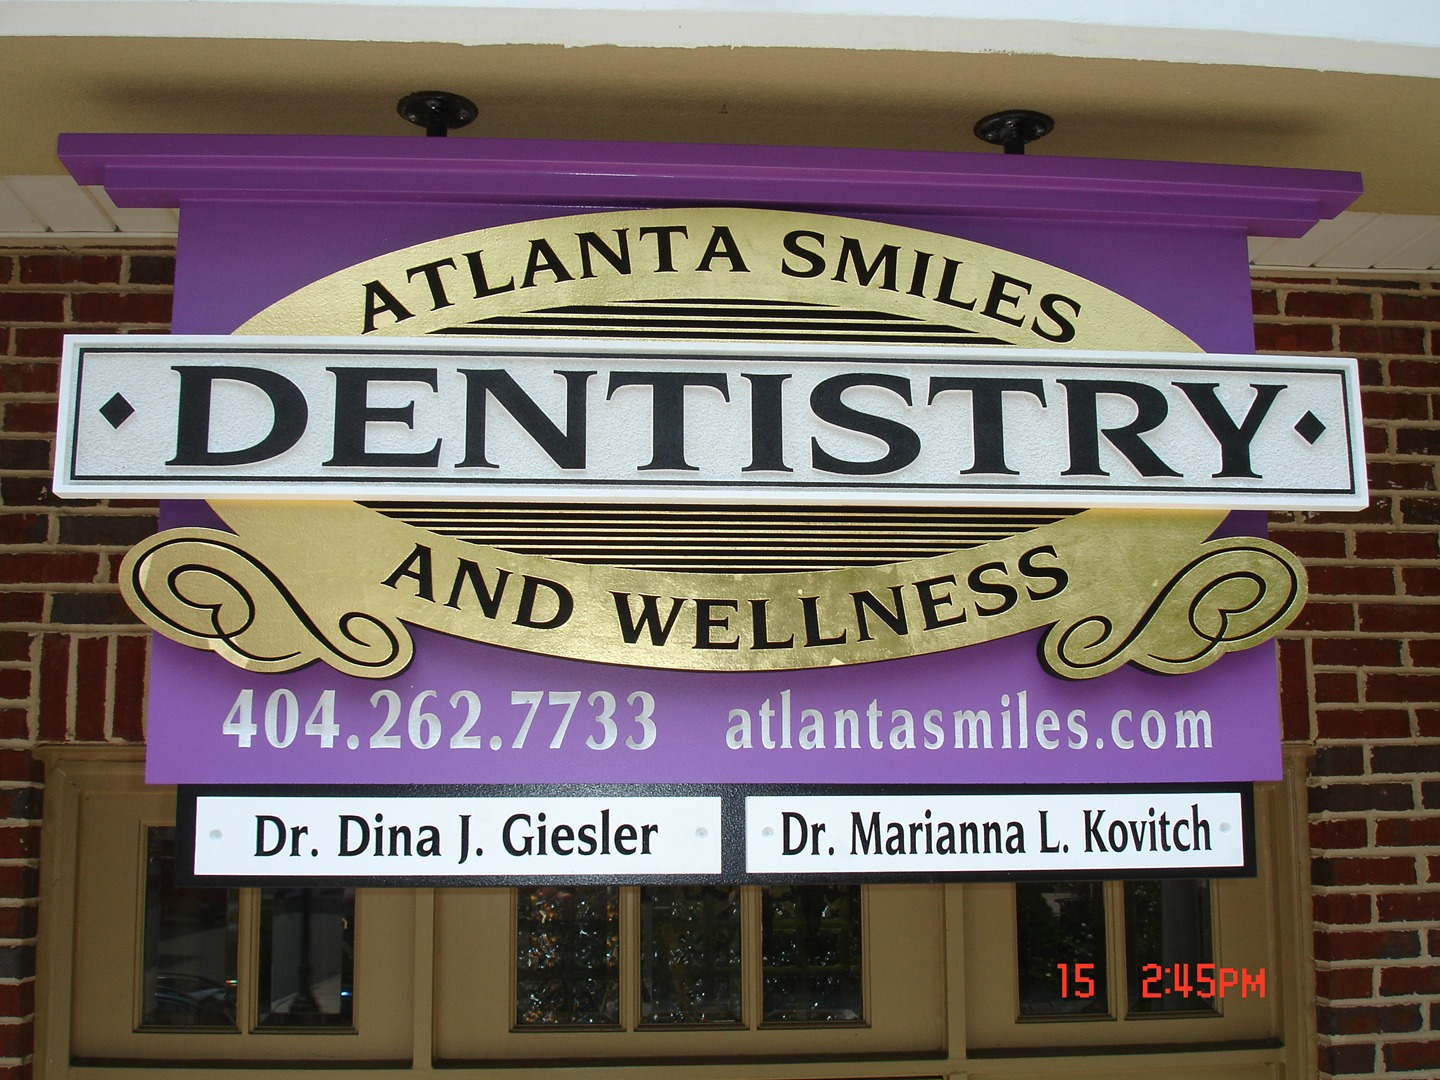 Atlanta Smiles Dentistry.jpg